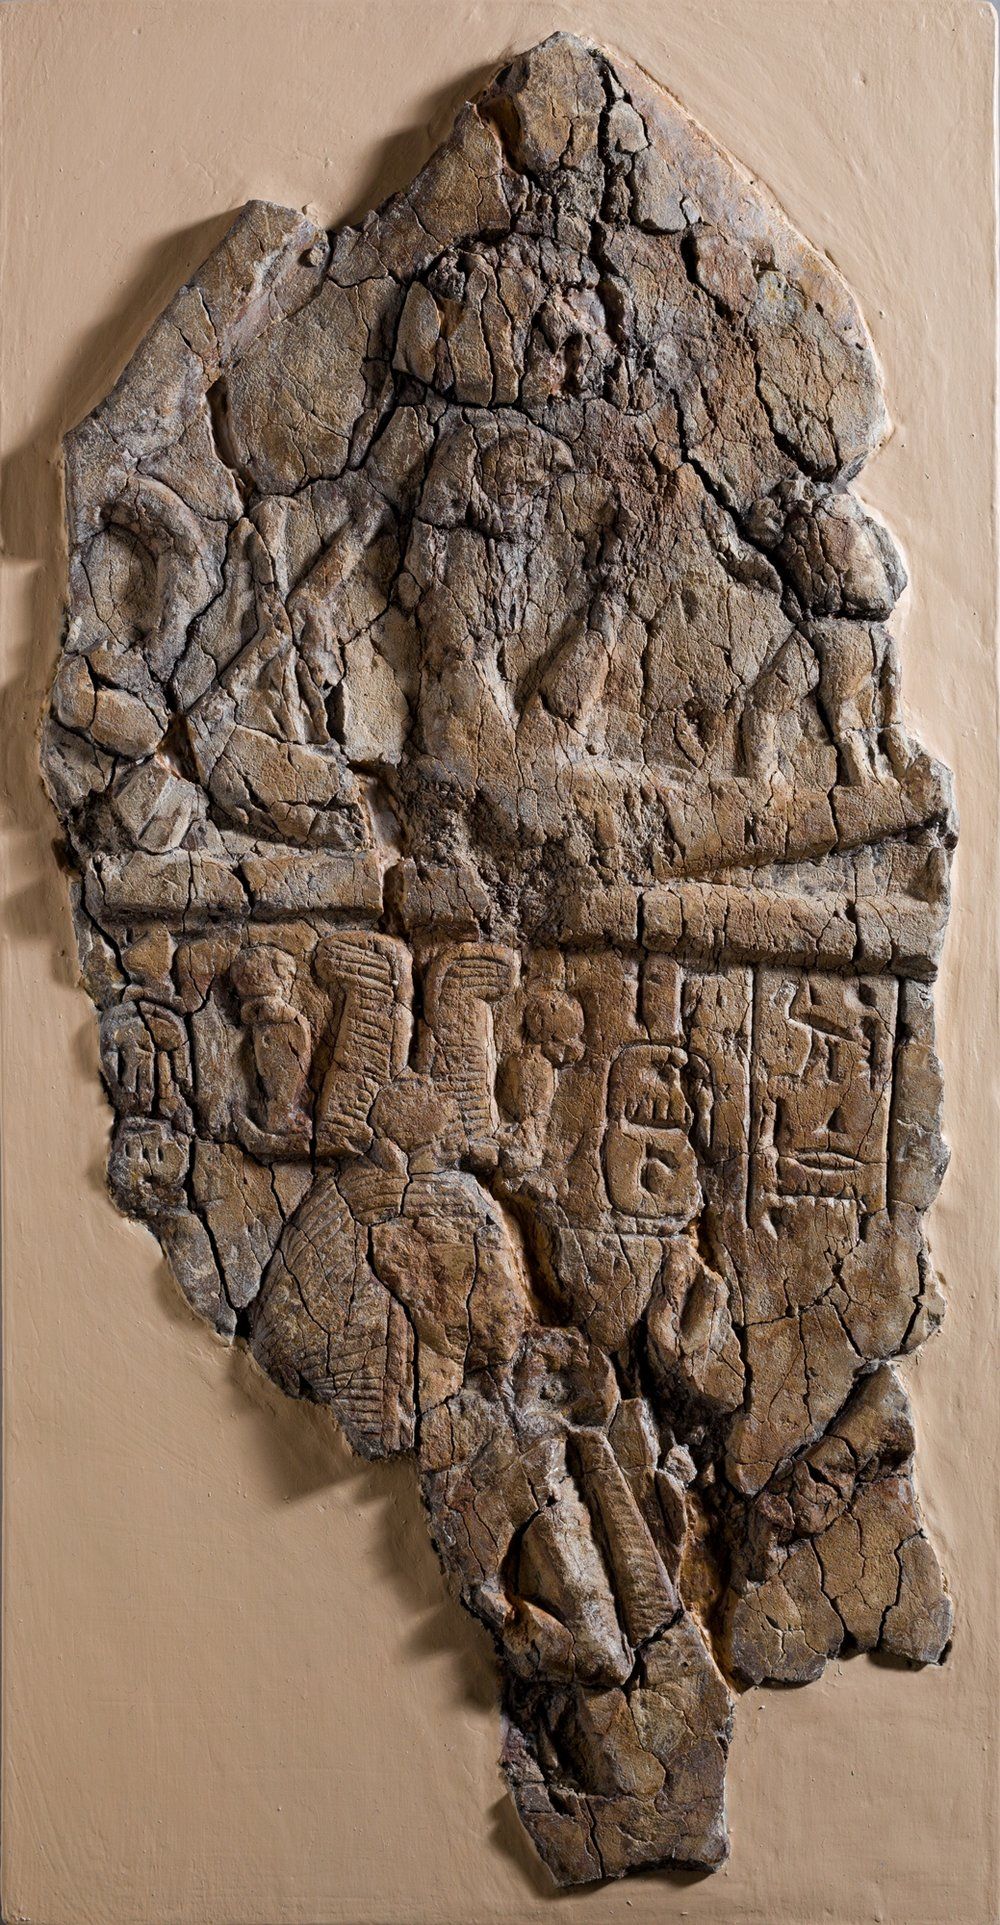 Fragment of Stela depicting a figure labeled 'excellent spirit of Re' facing Ramesses I and Ahmose-Nefertari beneath the barque of Re,ca. 1295–1070 B.C. Collection of the Metropolitan Museum of Art.